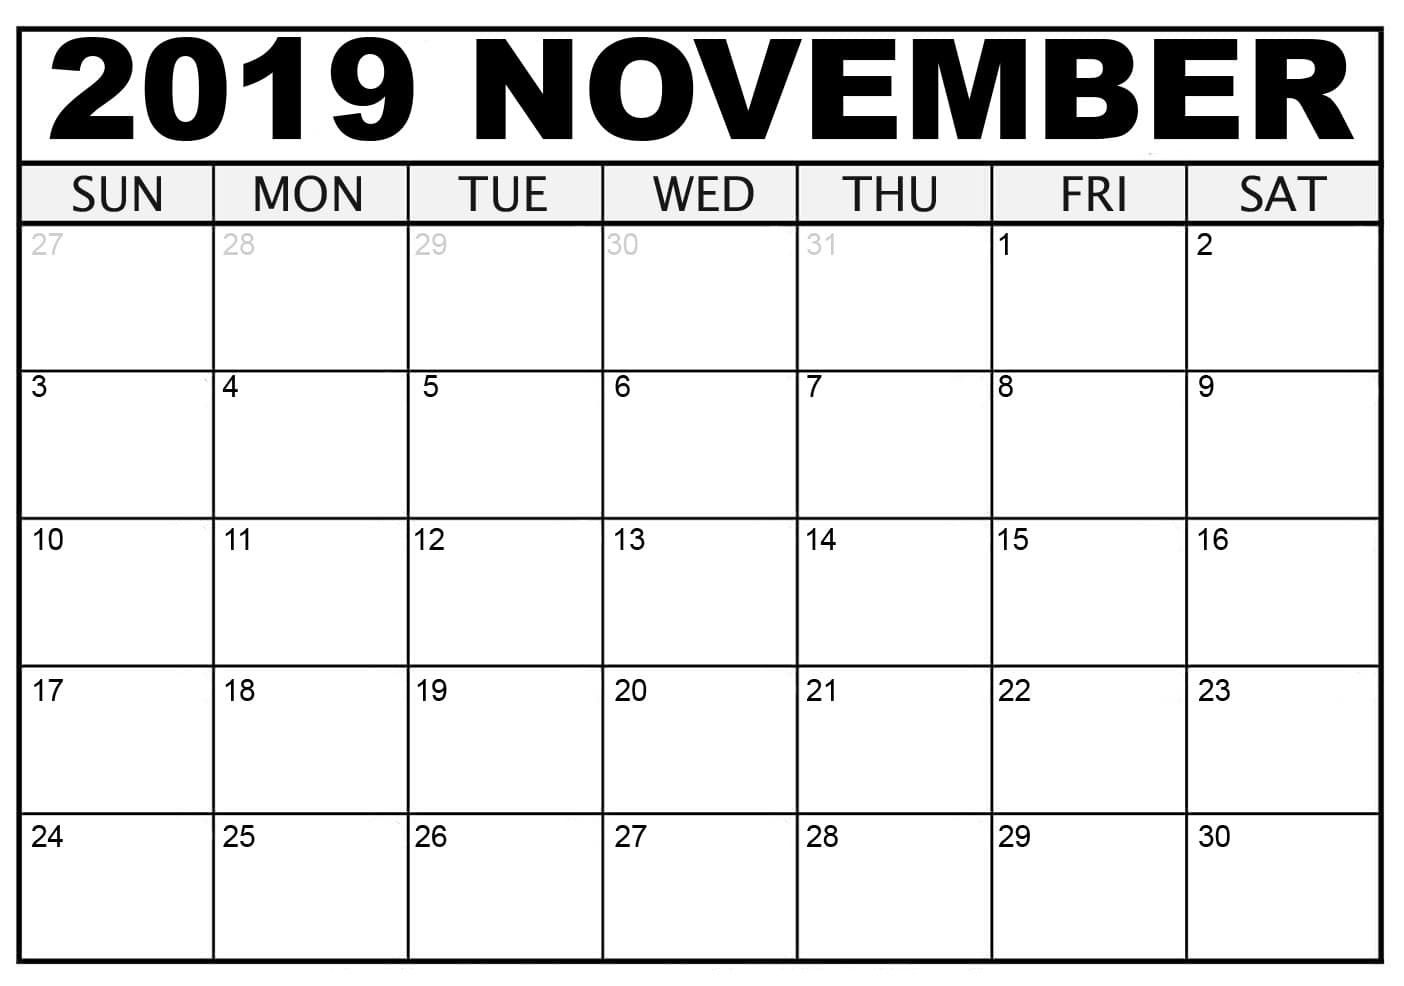 November 2019 Calendar Full Page Monthly Calendar Template